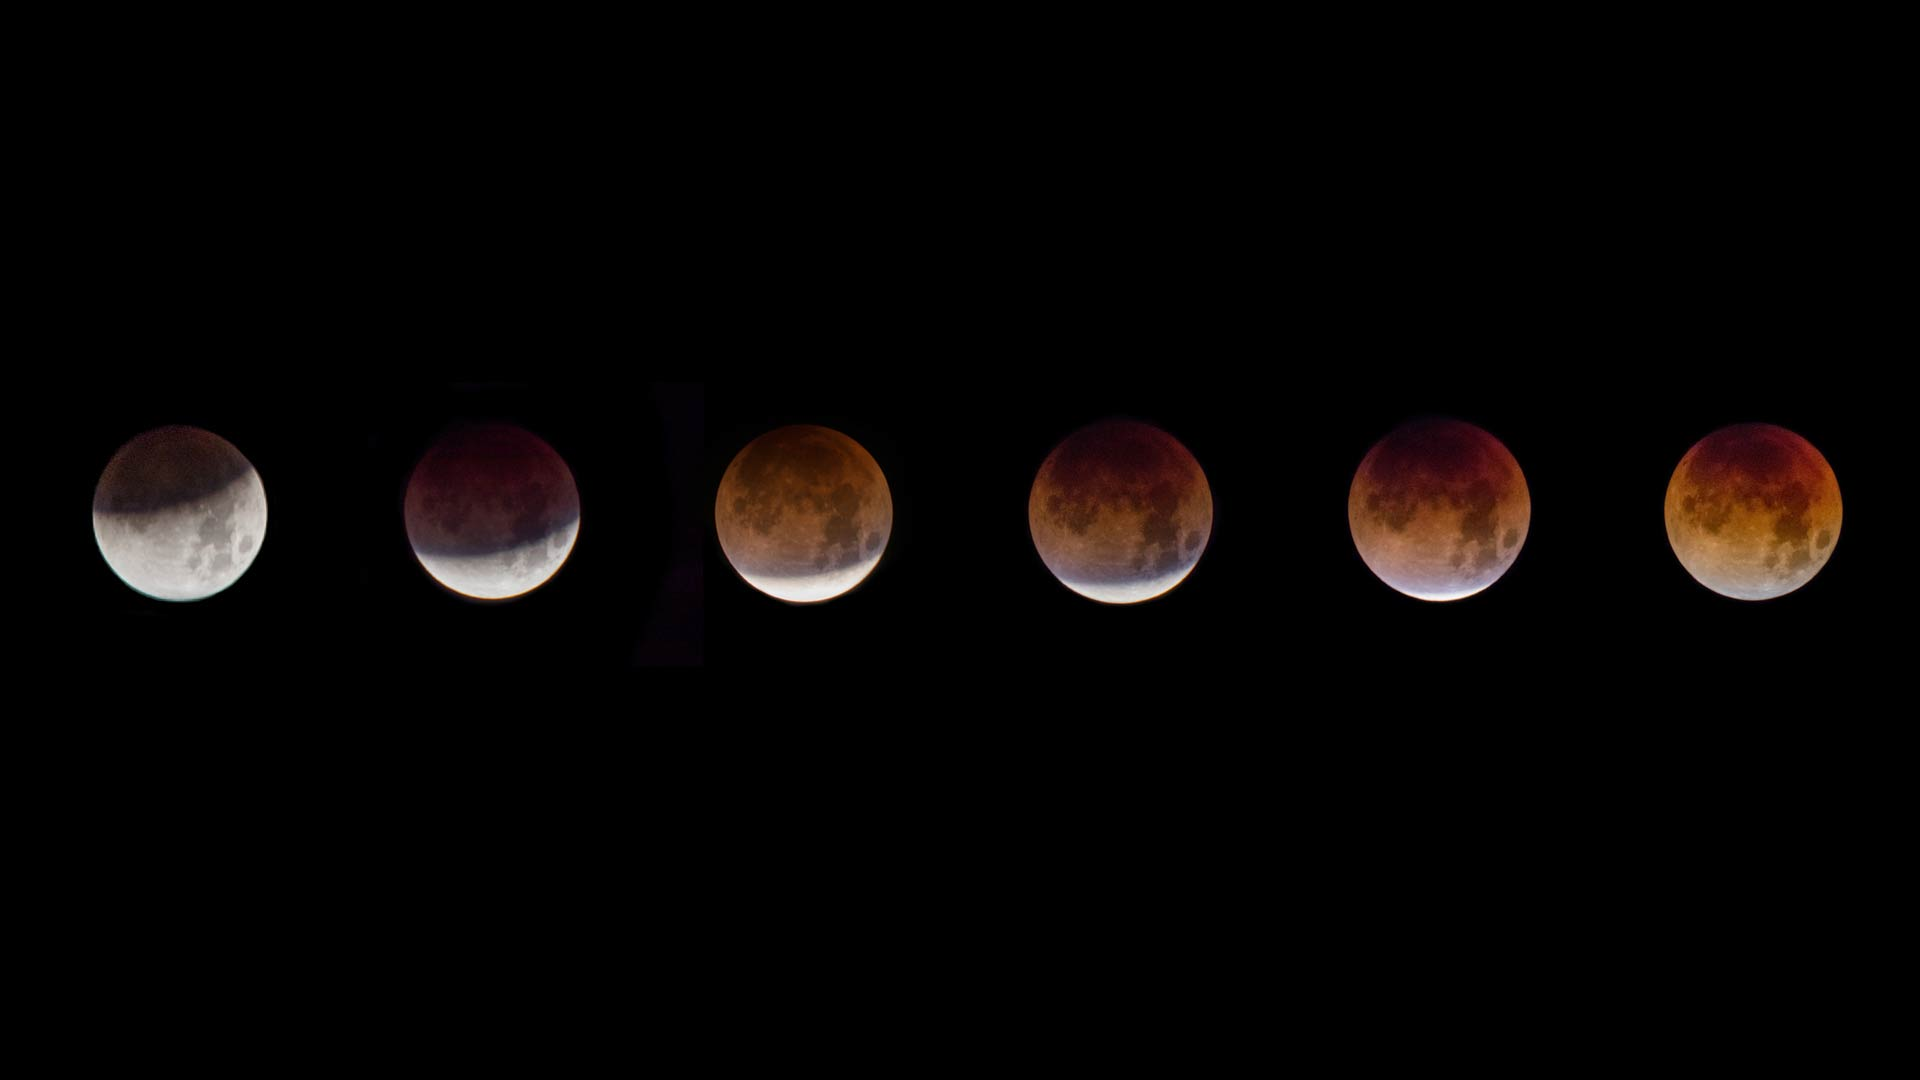 Lunar eclipse 2018 phases